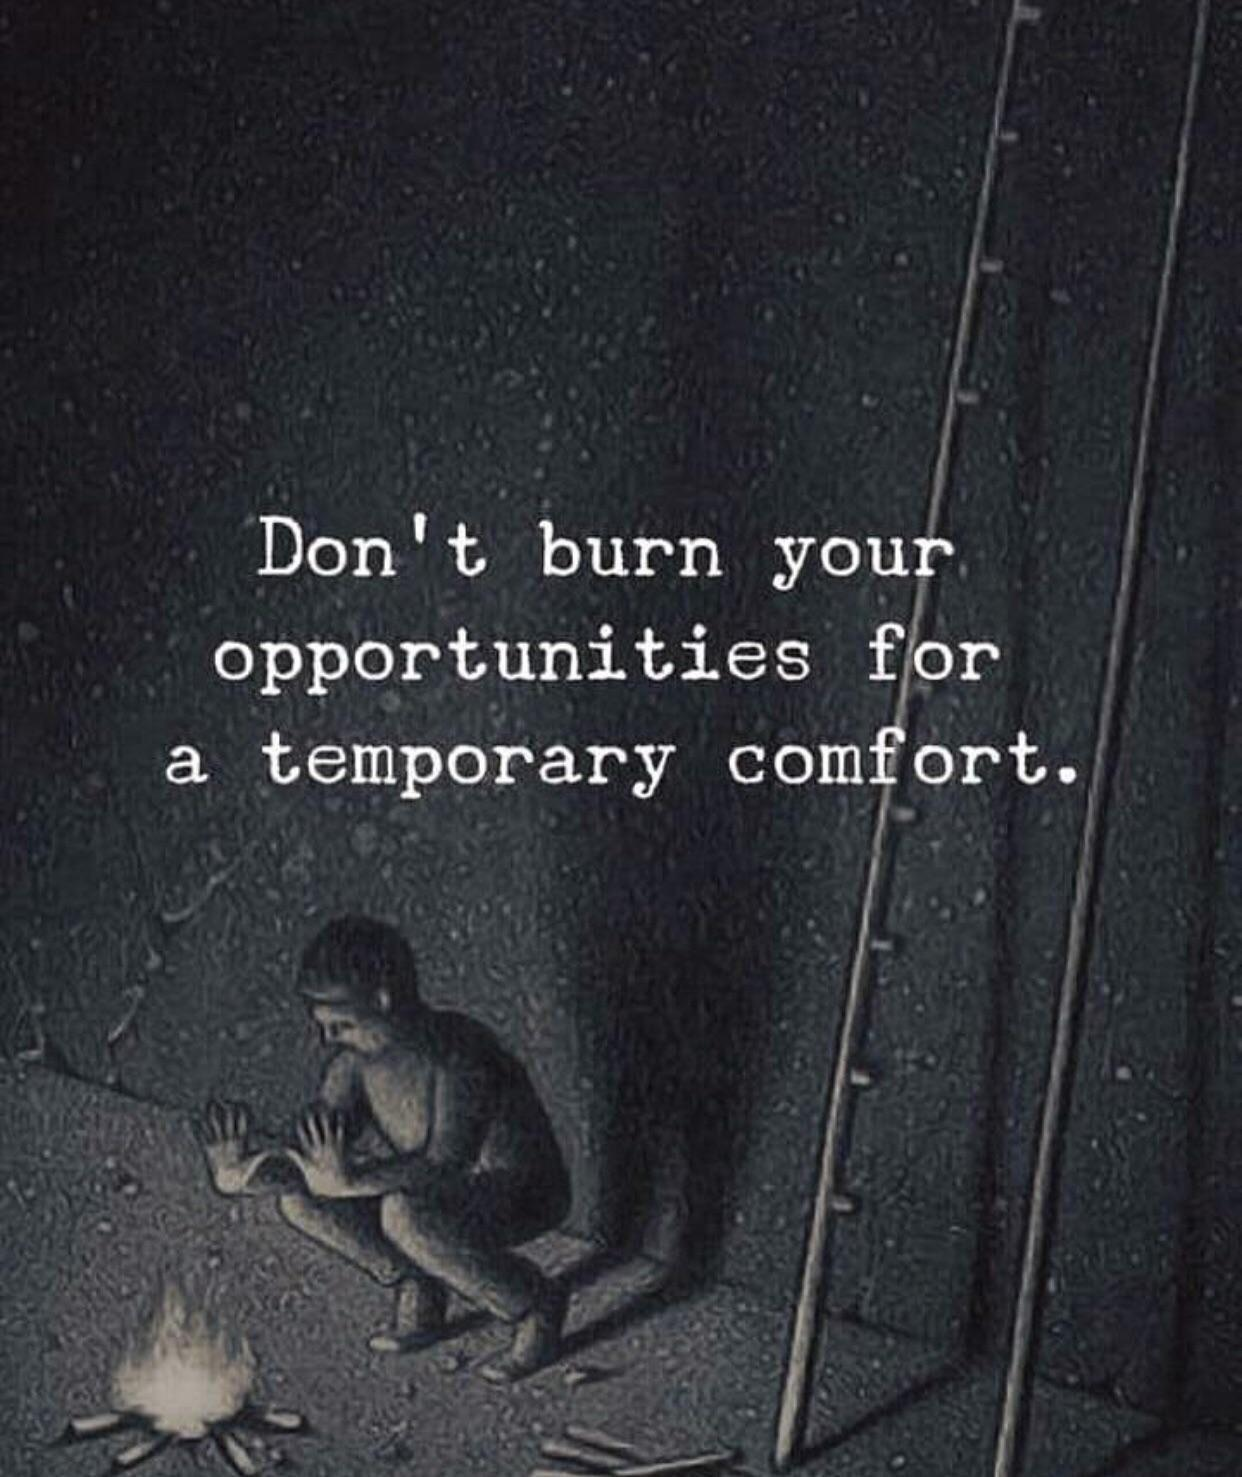 [IMAGE] Be careful out there